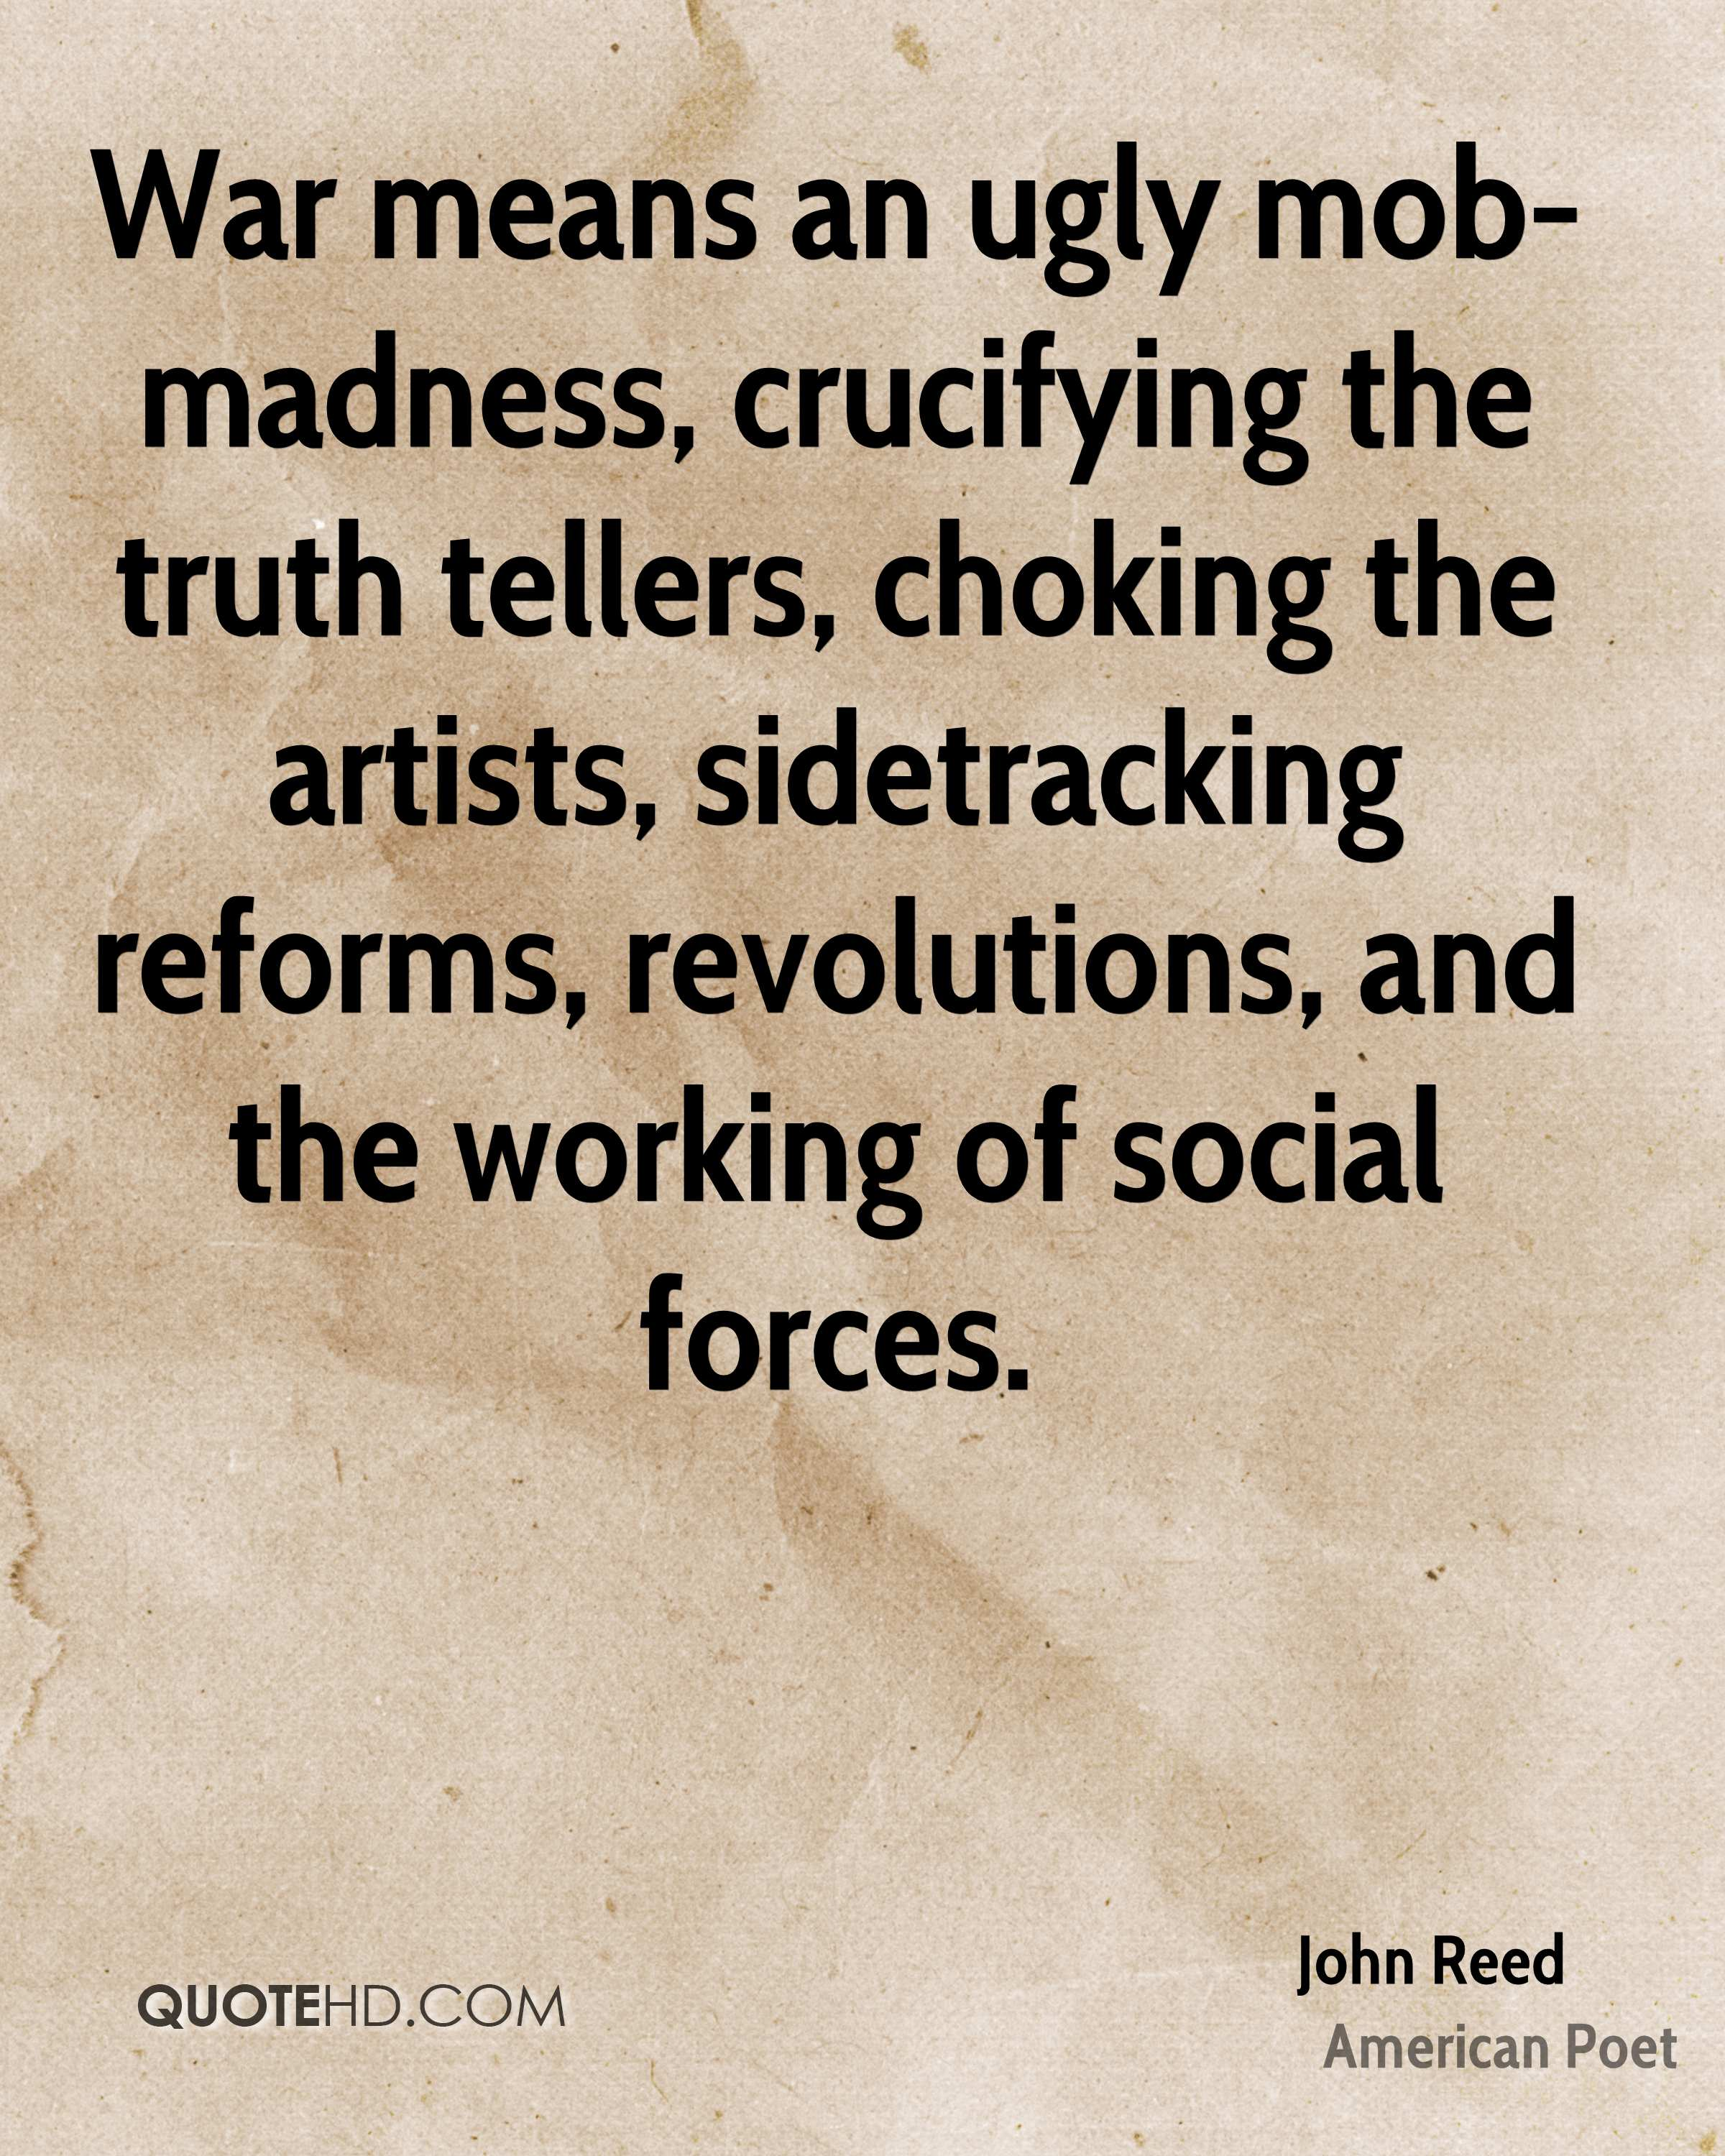 War means an ugly mob-madness, crucifying the truth tellers, choking the artists, sidetracking reforms, revolutions, and the working of social forces.